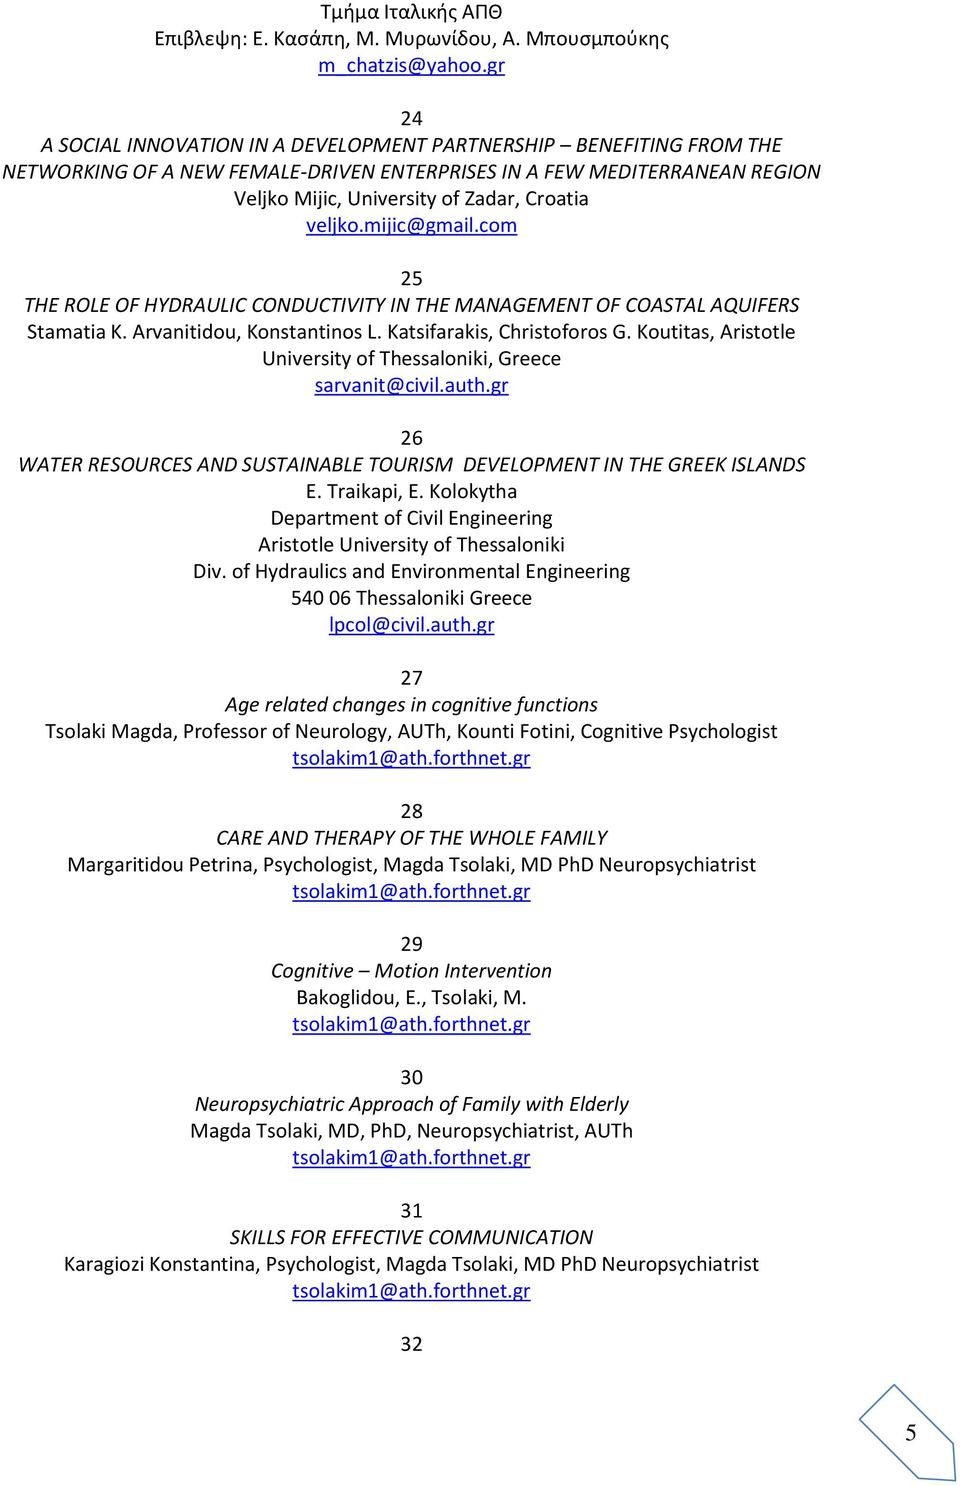 veljko.mijic@gmail.com 25 THE ROLE OF HYDRAULIC CONDUCTIVITY IN THE MANAGEMENT OF COASTAL AQUIFERS Stamatia K. Arvanitidou, Konstantinos L. Katsifarakis, Christoforos G.